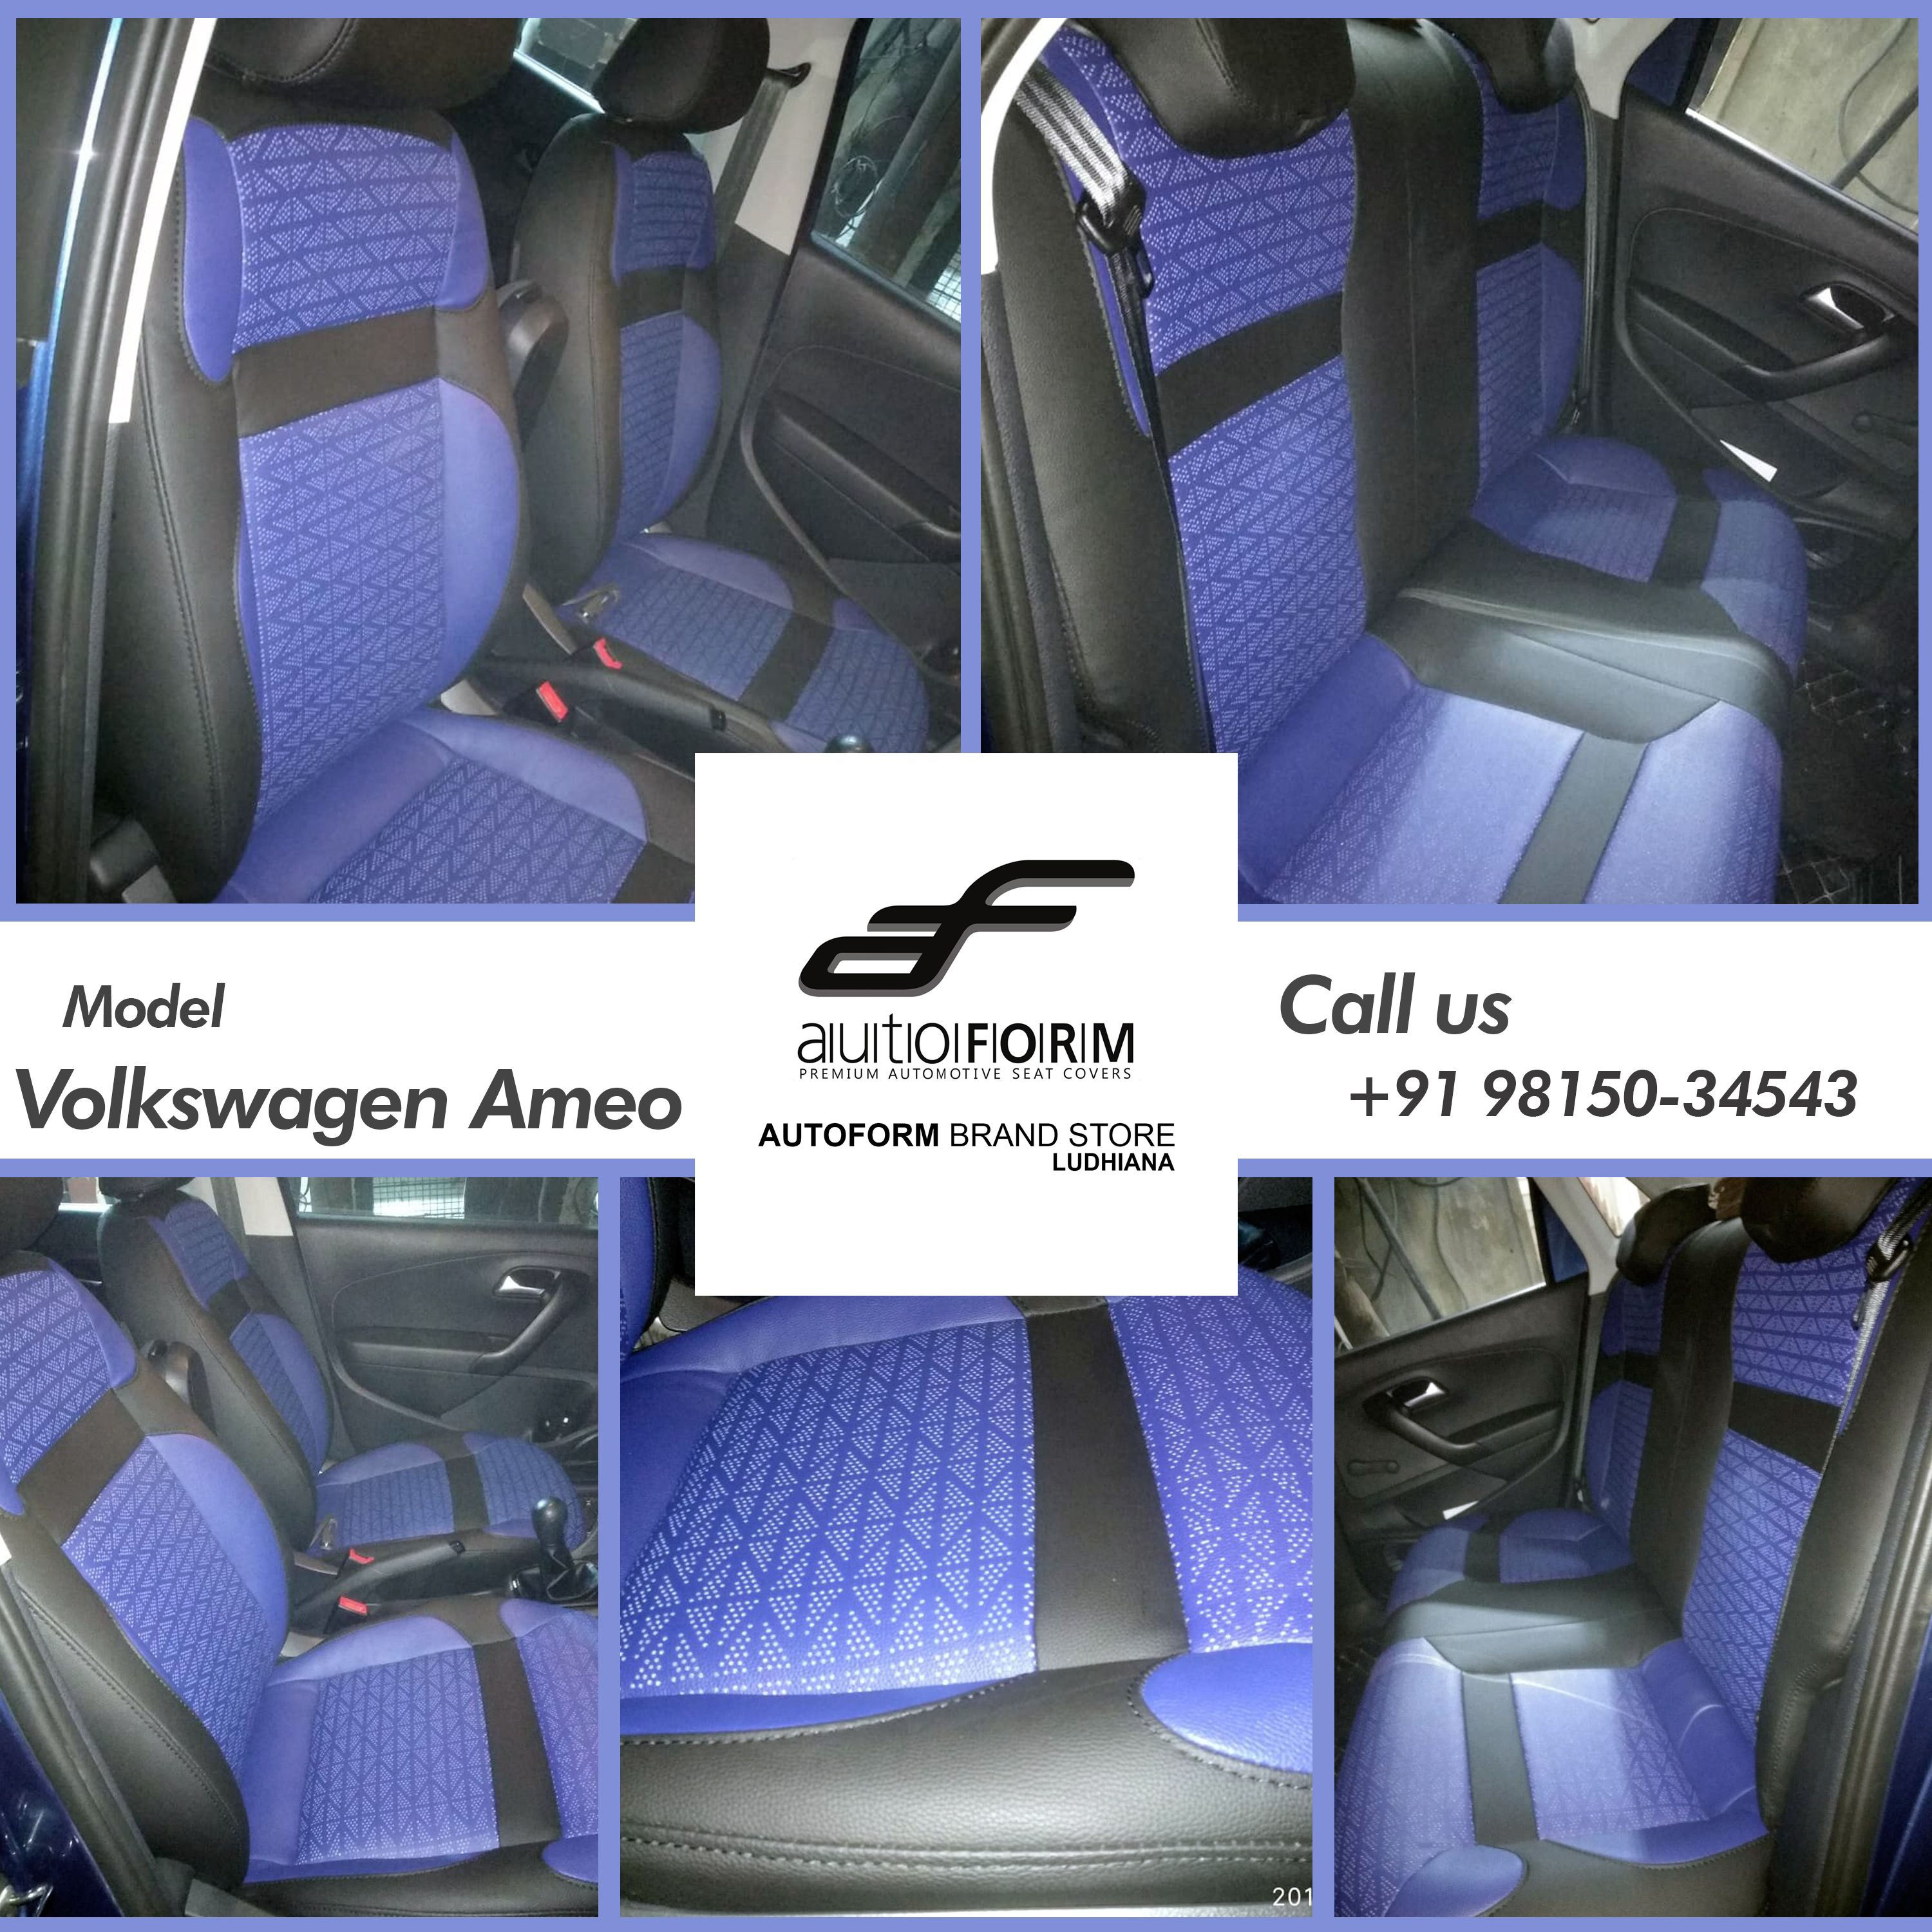 Fine Sporty Look In Volkswagen With Zig Zag Perforated Design So Ocoug Best Dining Table And Chair Ideas Images Ocougorg